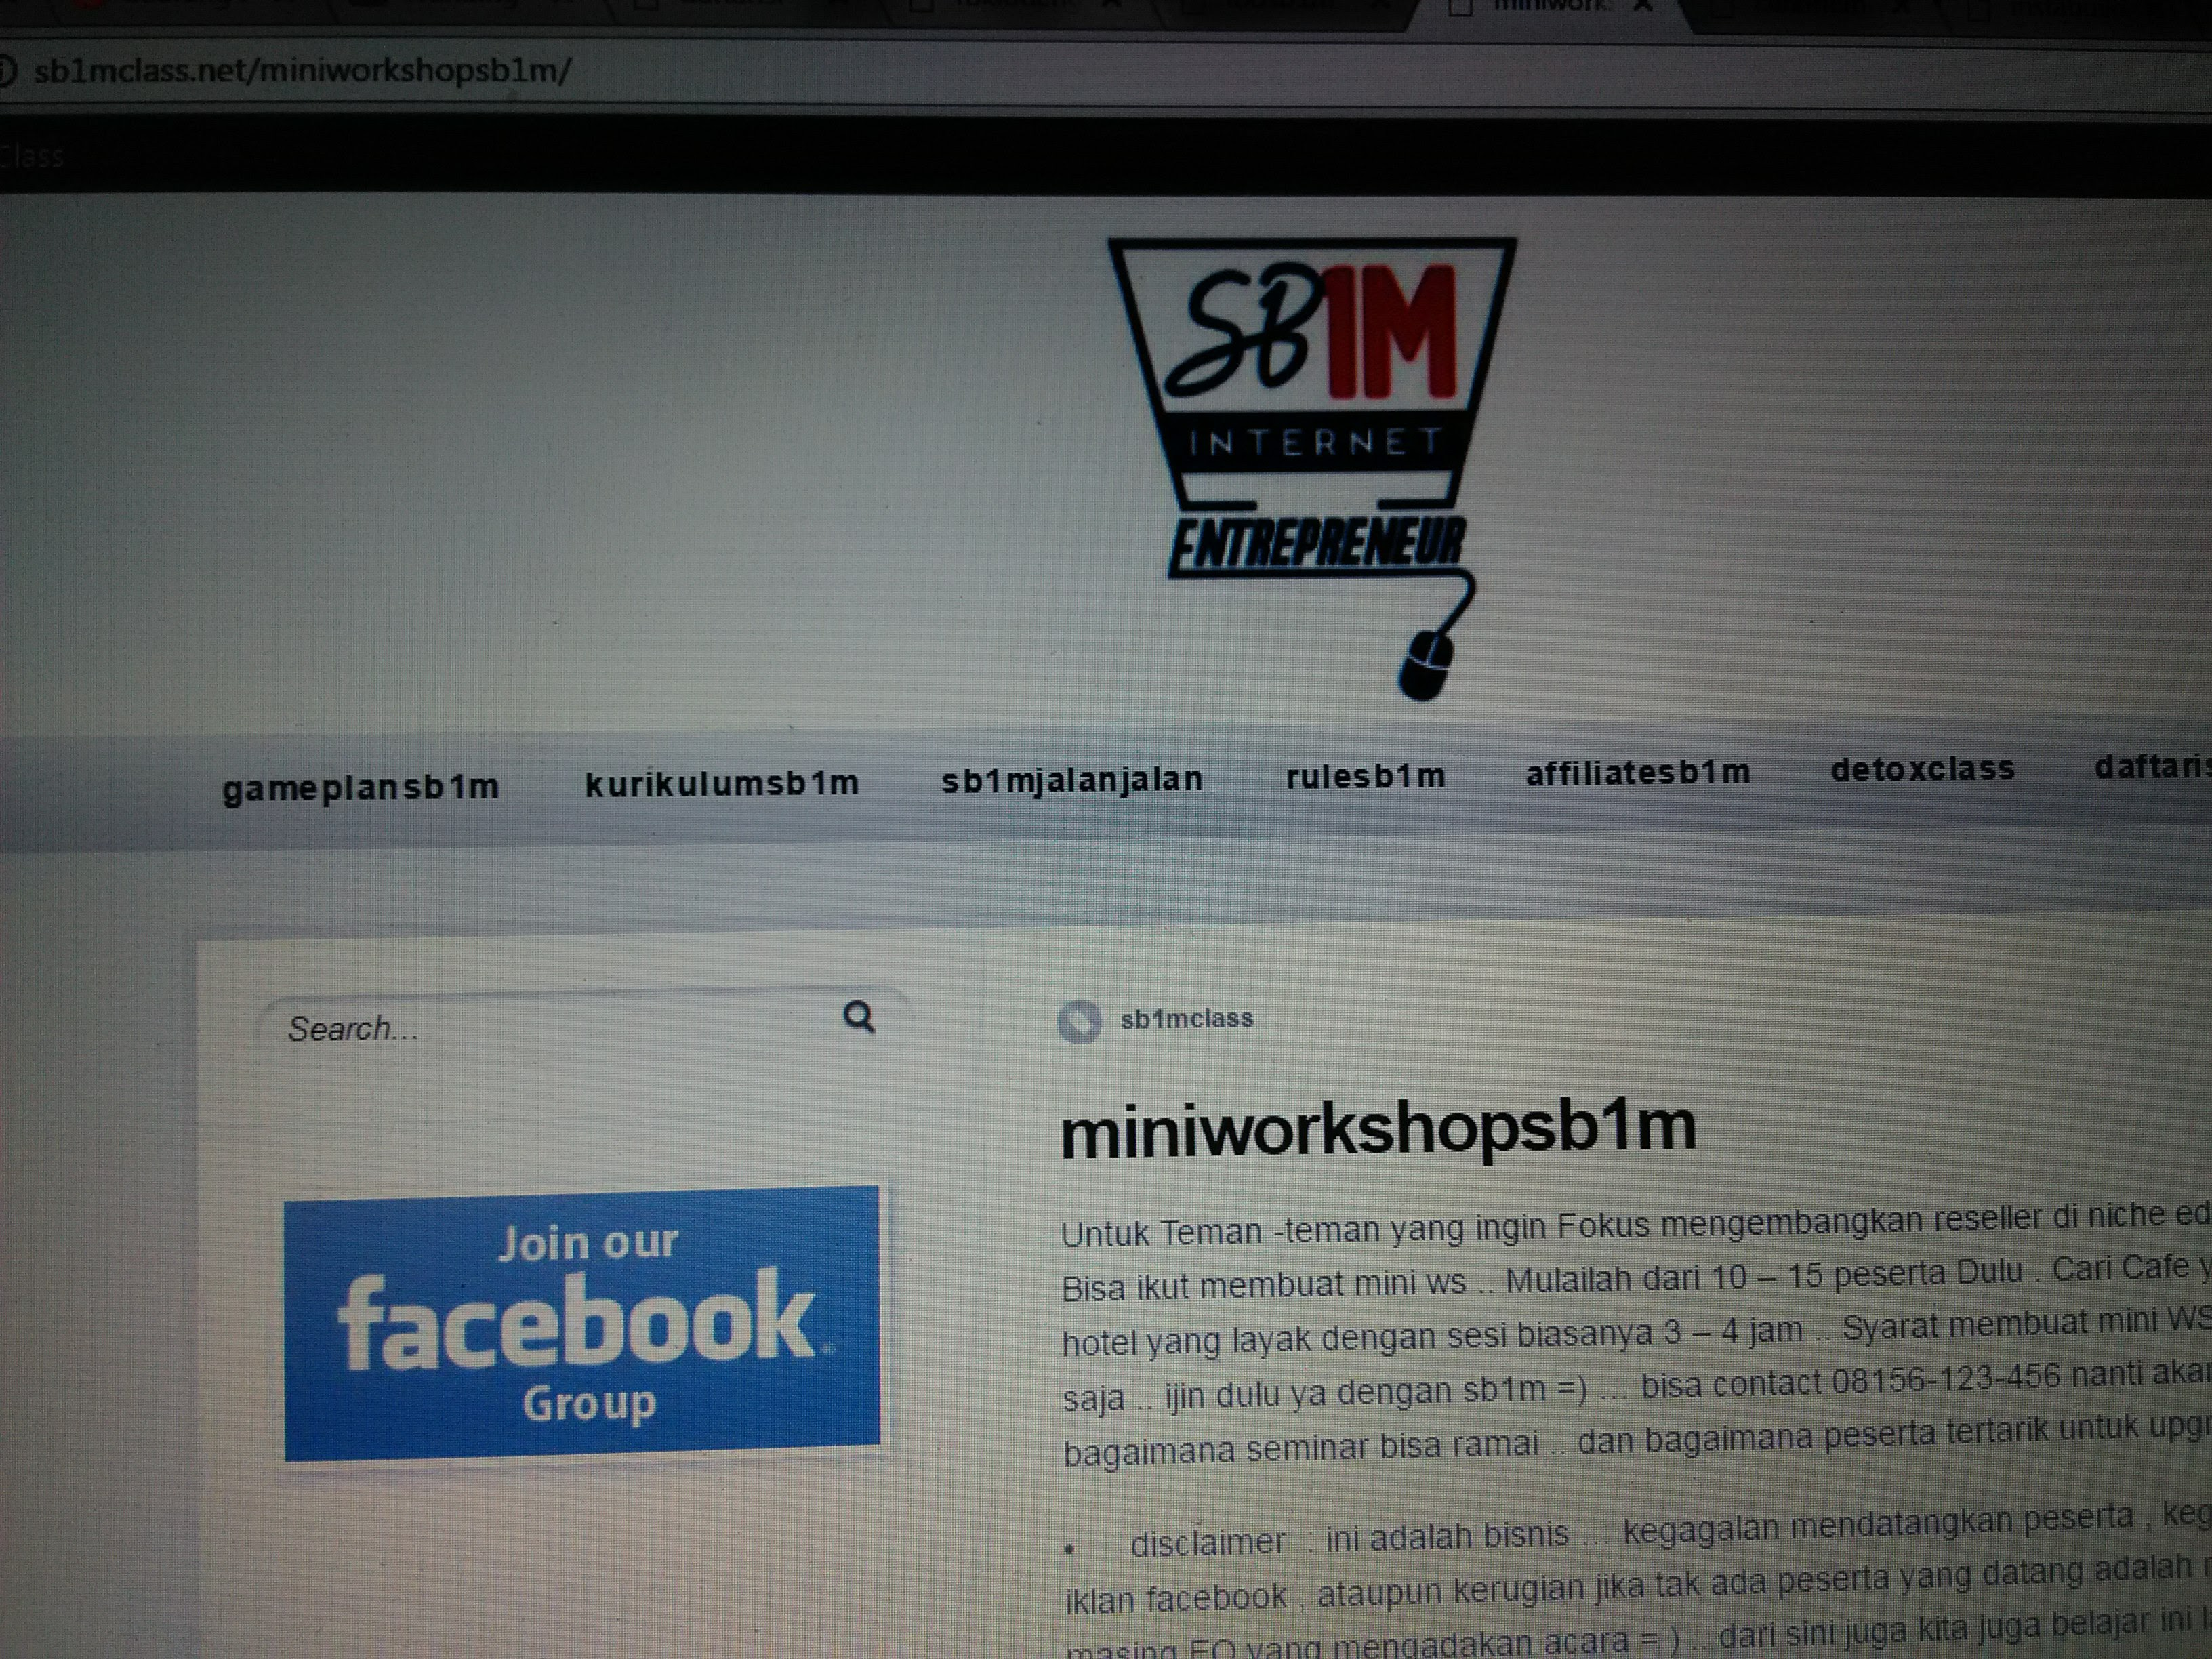 materi-kursus-bisinis-internet-sb1m-mini-workshop-sb1m